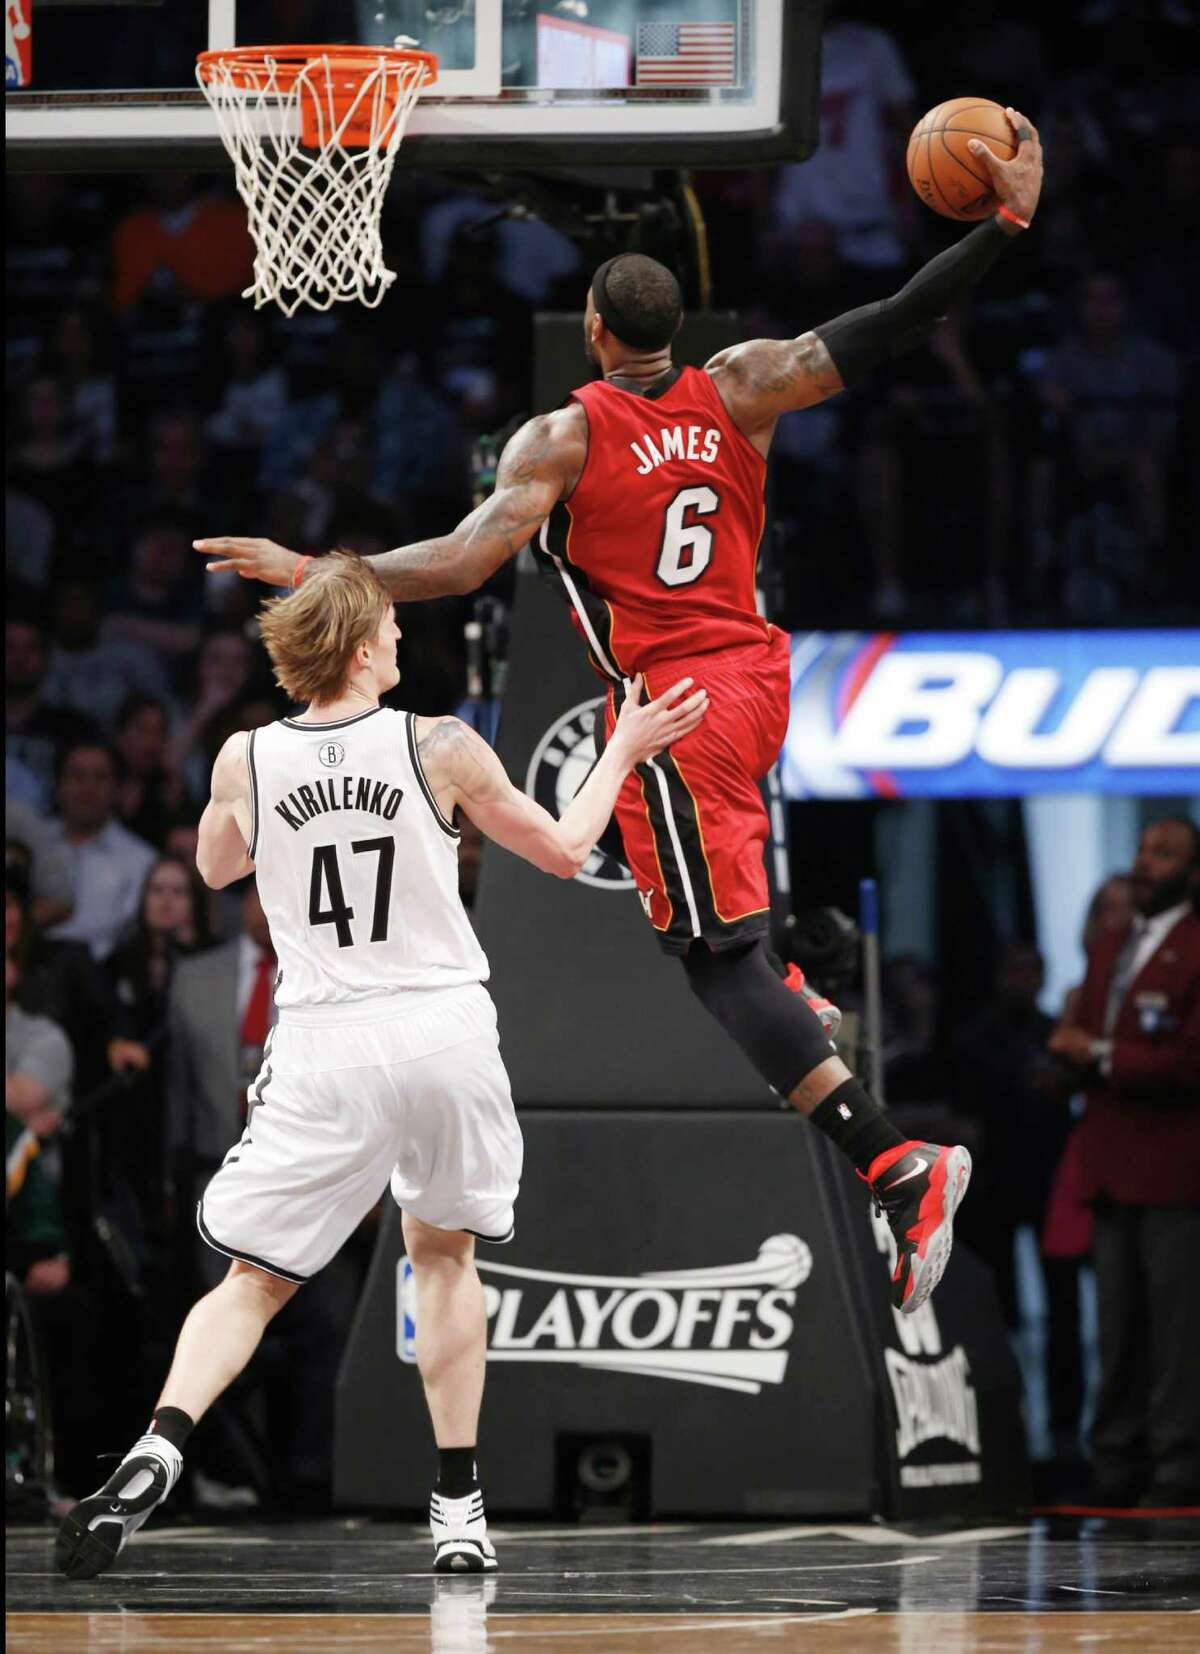 The Heat's LeBron James soars over Nets forward Andrei Kirilenko in the first half. James matched the 49 points he scored with the Cavs in the 2009 playoffs.